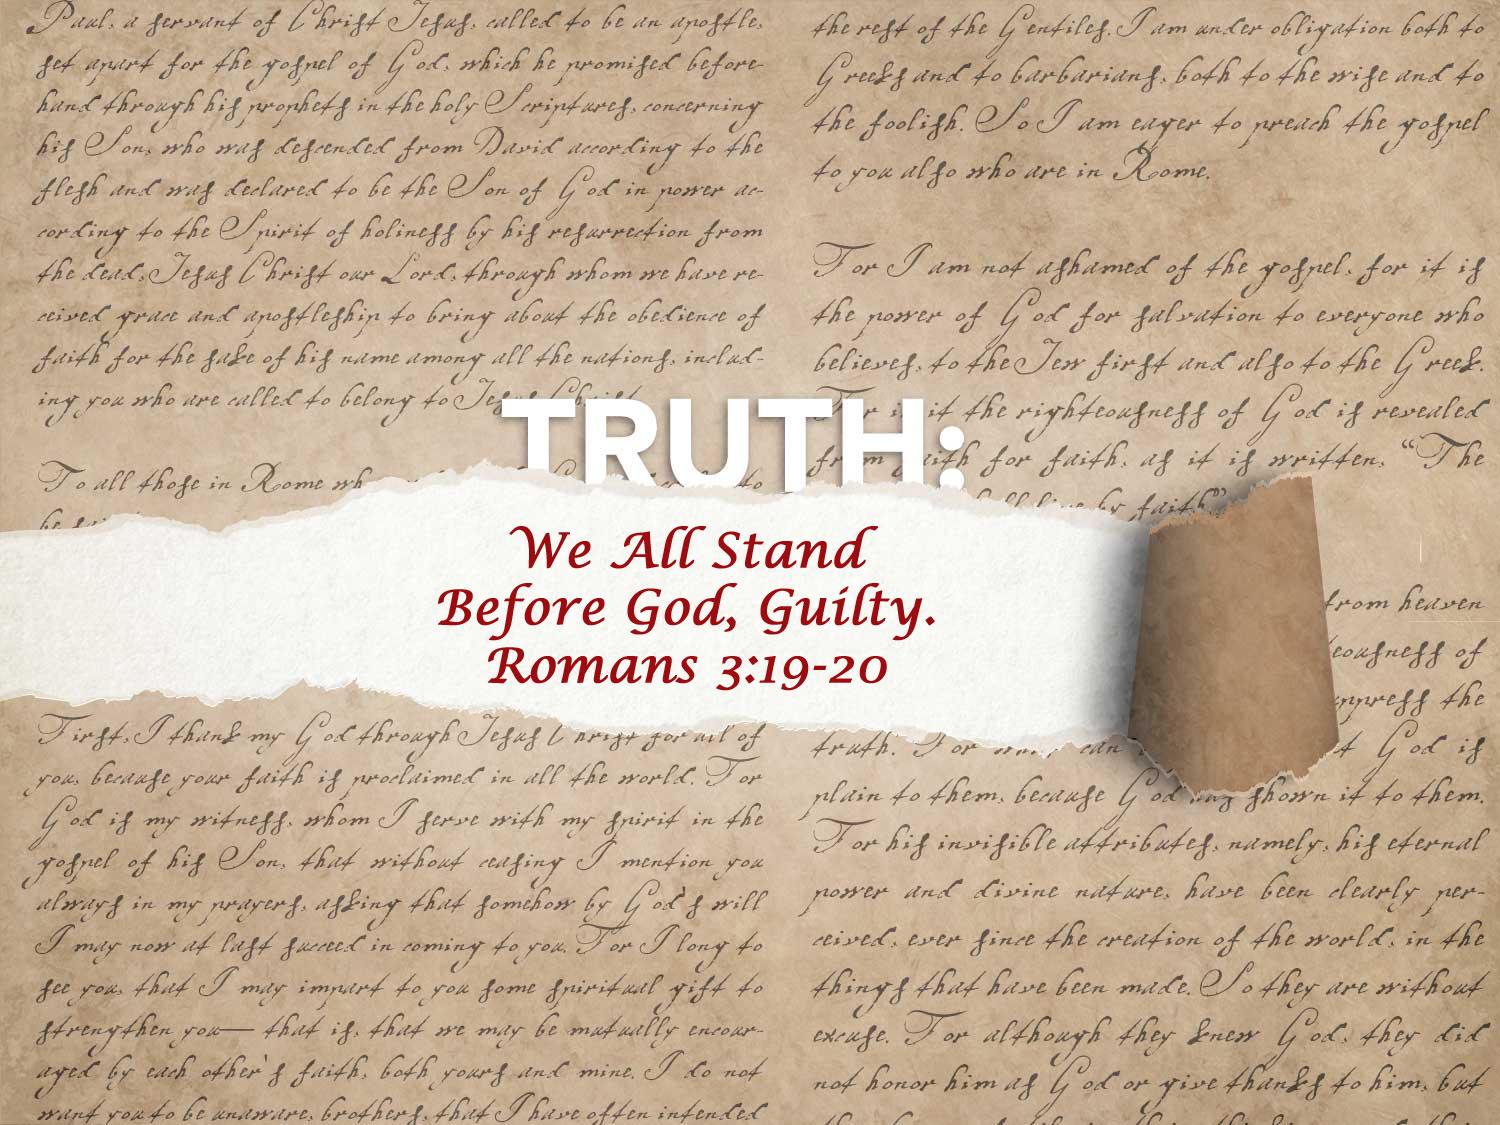 Romans 3:19-20 We All Stand Before God Guilty